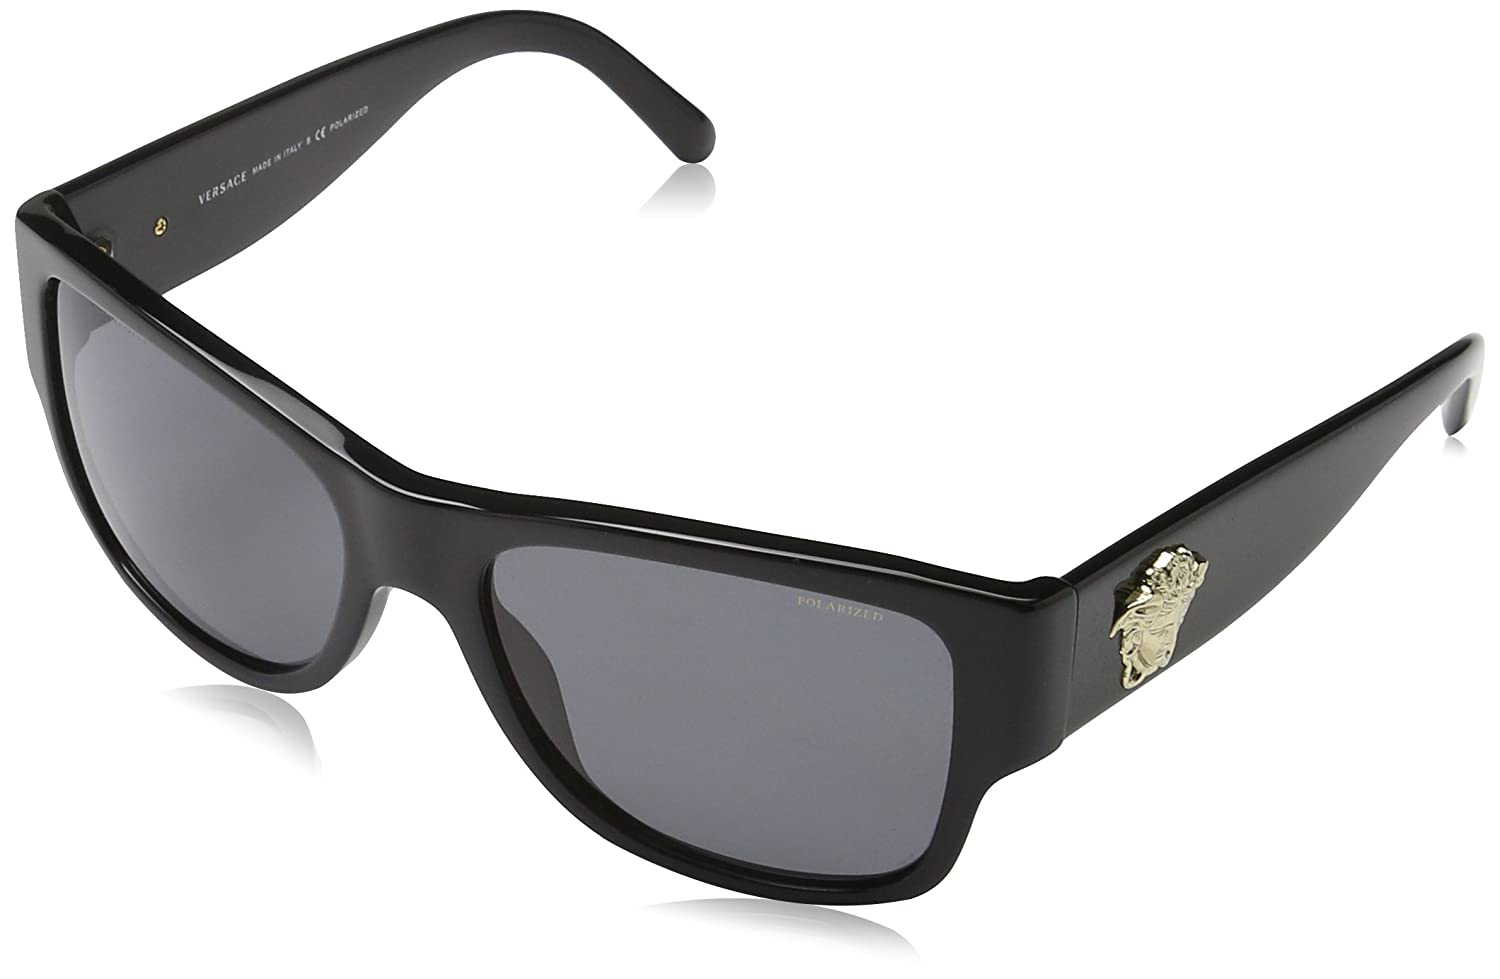 dc2e5e0fd8 Amazon.com  Versace Women s VE4275 Black Polarized Grey  Versace  Clothing